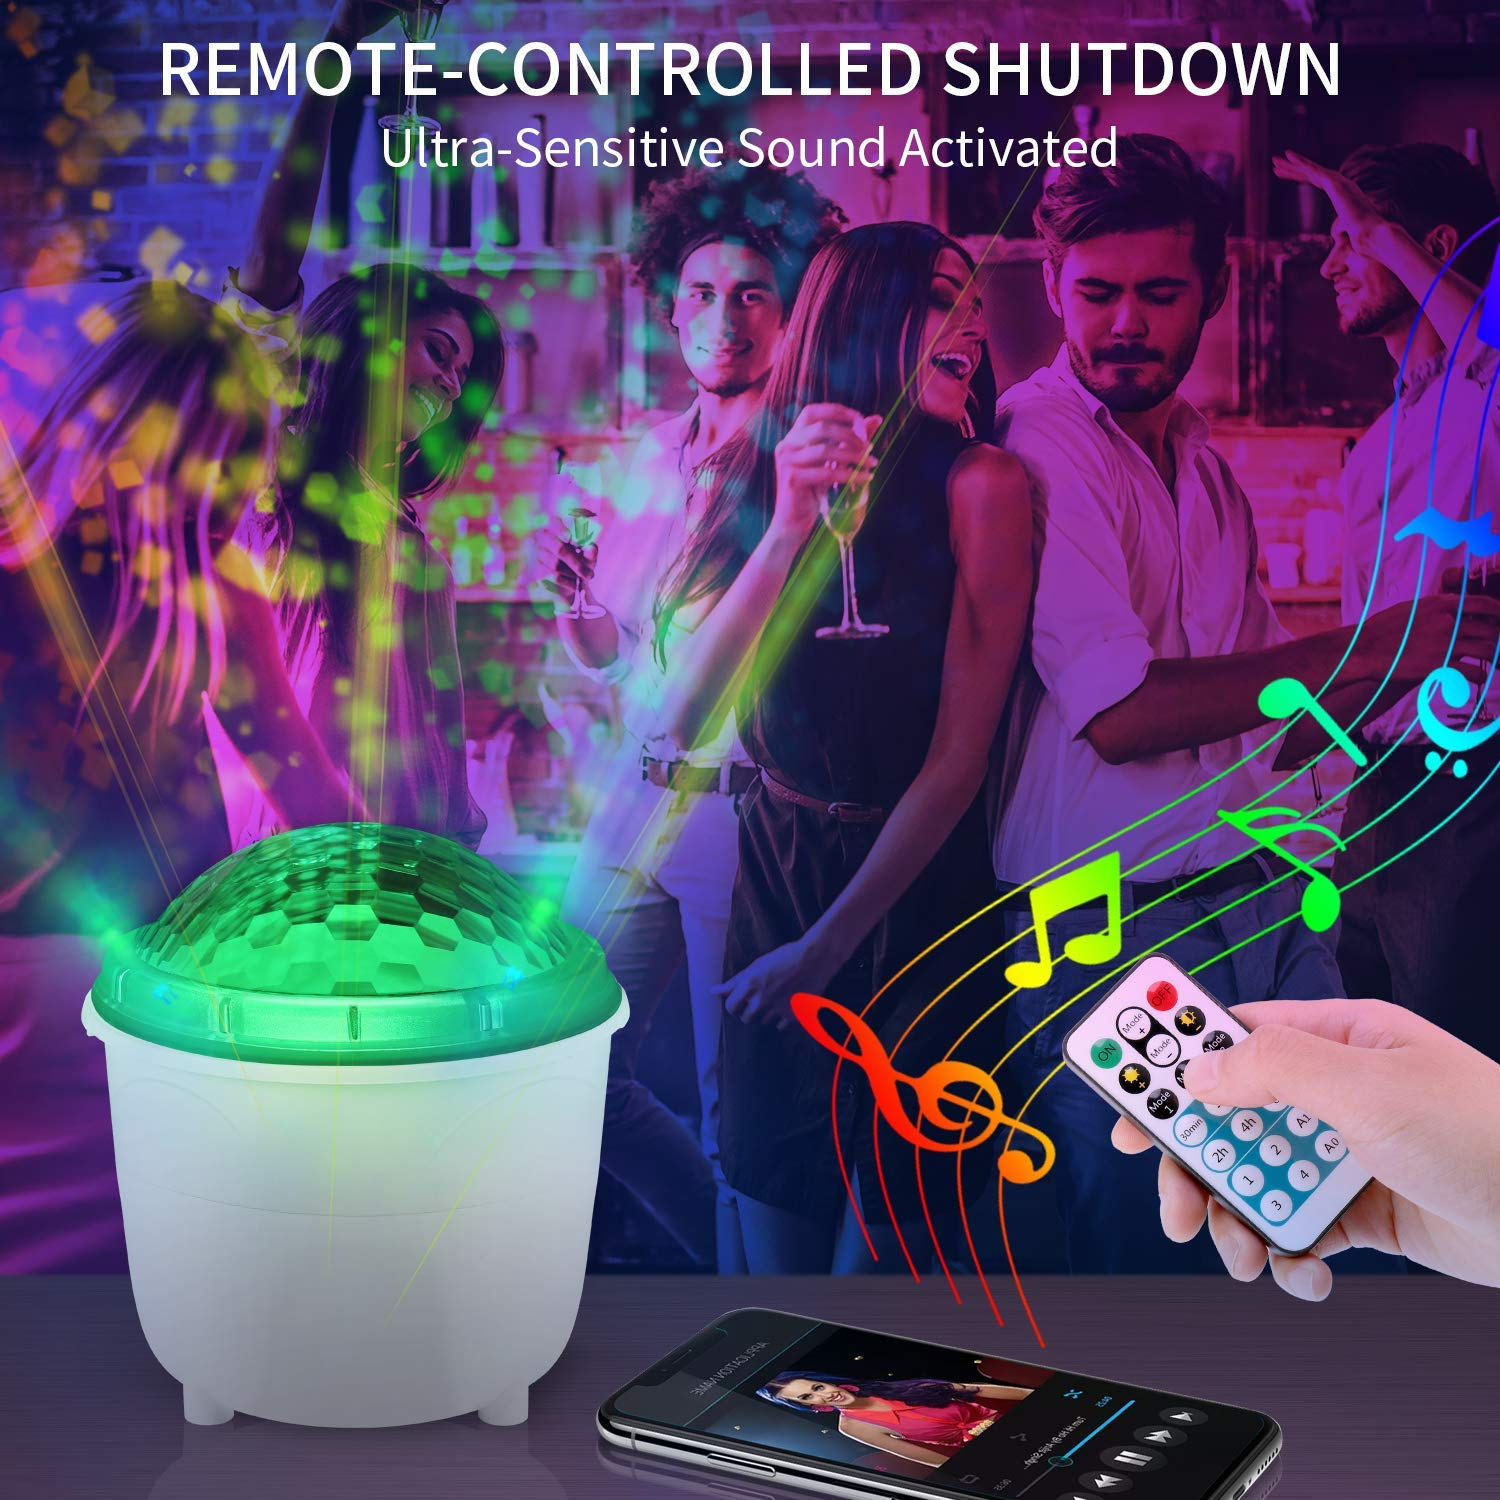 Zeonetak Night Light Projector 2-in-1 Function Remote Control Timer Design Sleep Soothing Baby Room Night Light for Kids Sound Activated Rotating Projector for Christmas Halloween Home Party Gift by Zeonetak